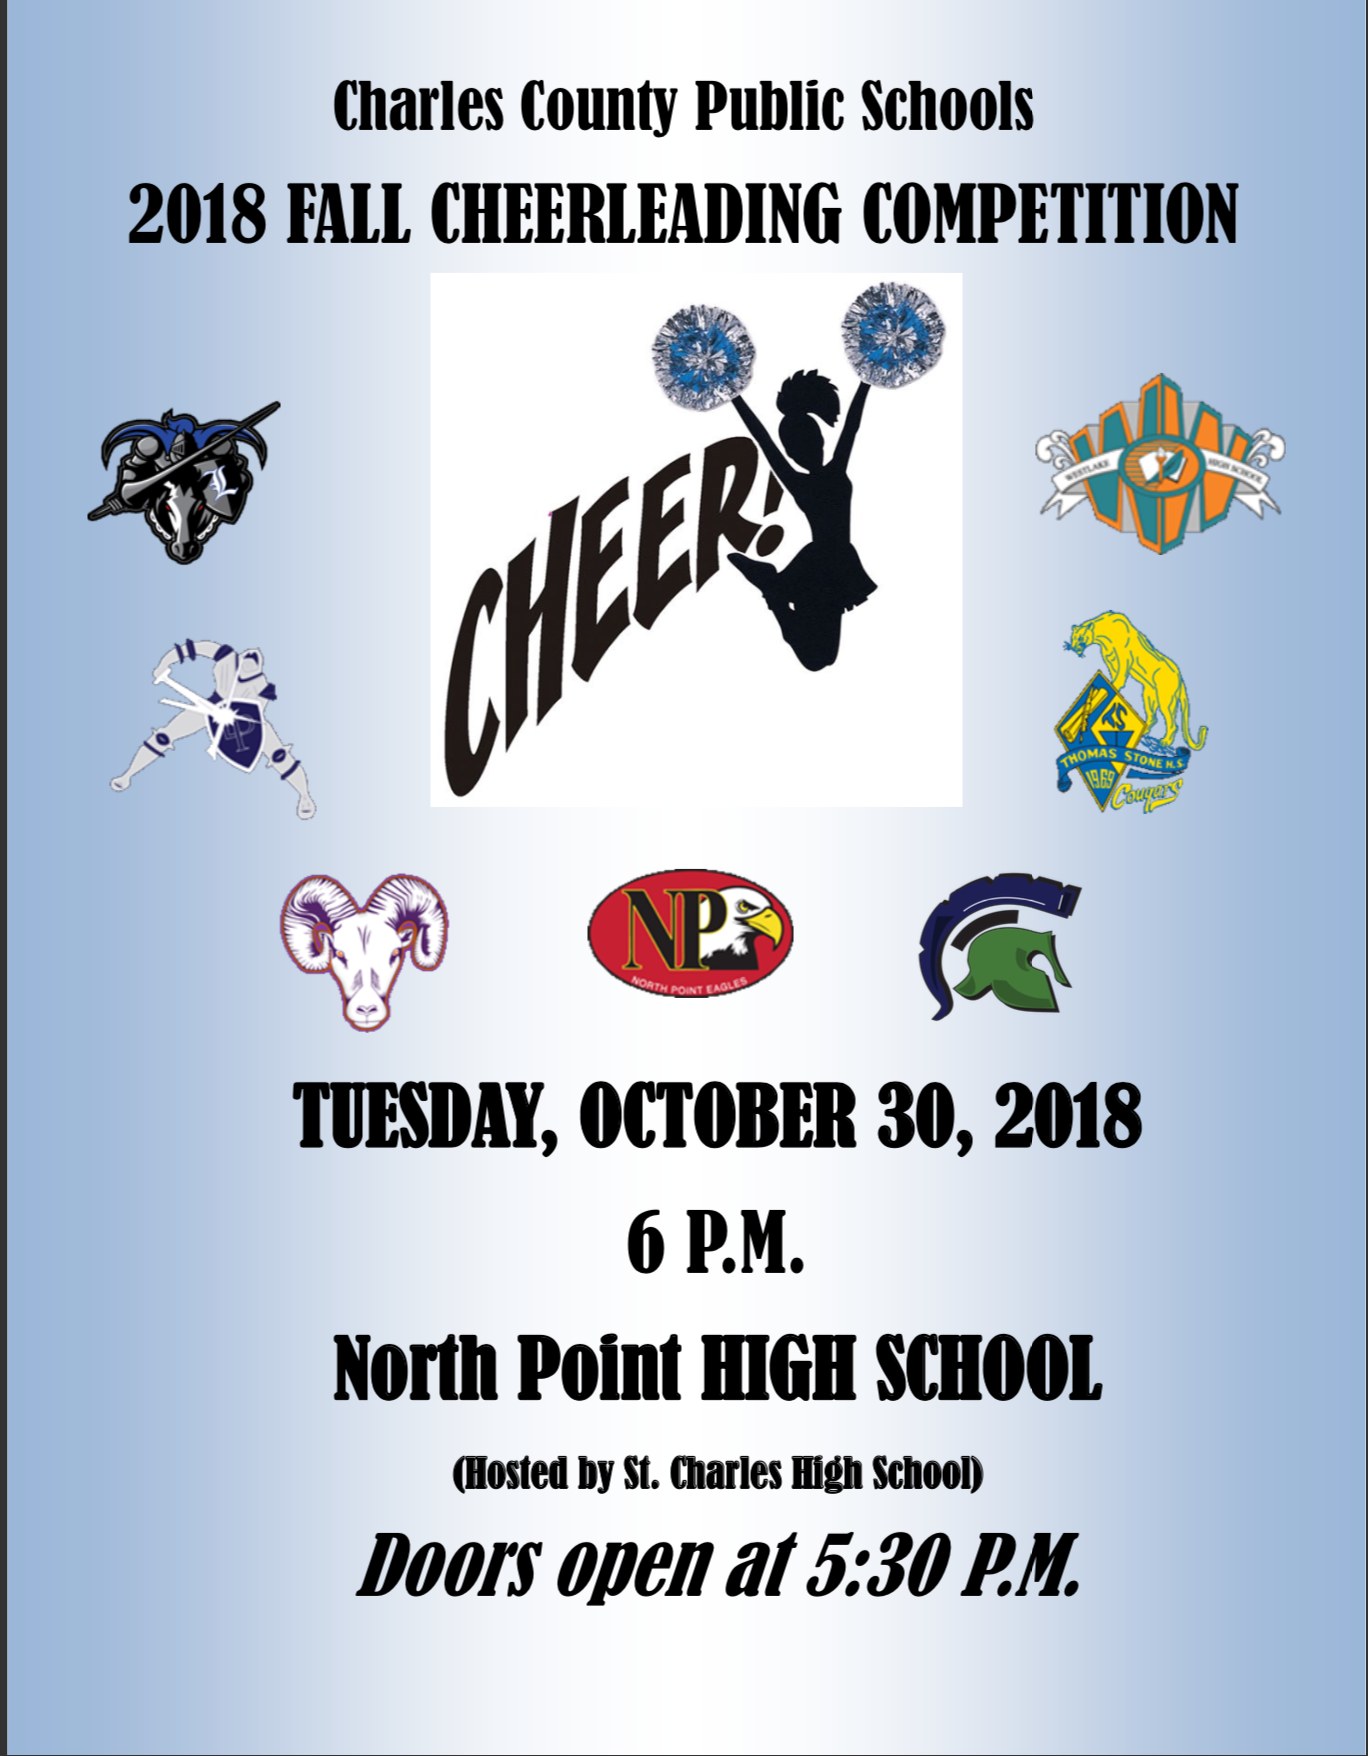 2018 Fall Cheerleading Competition – Charles County